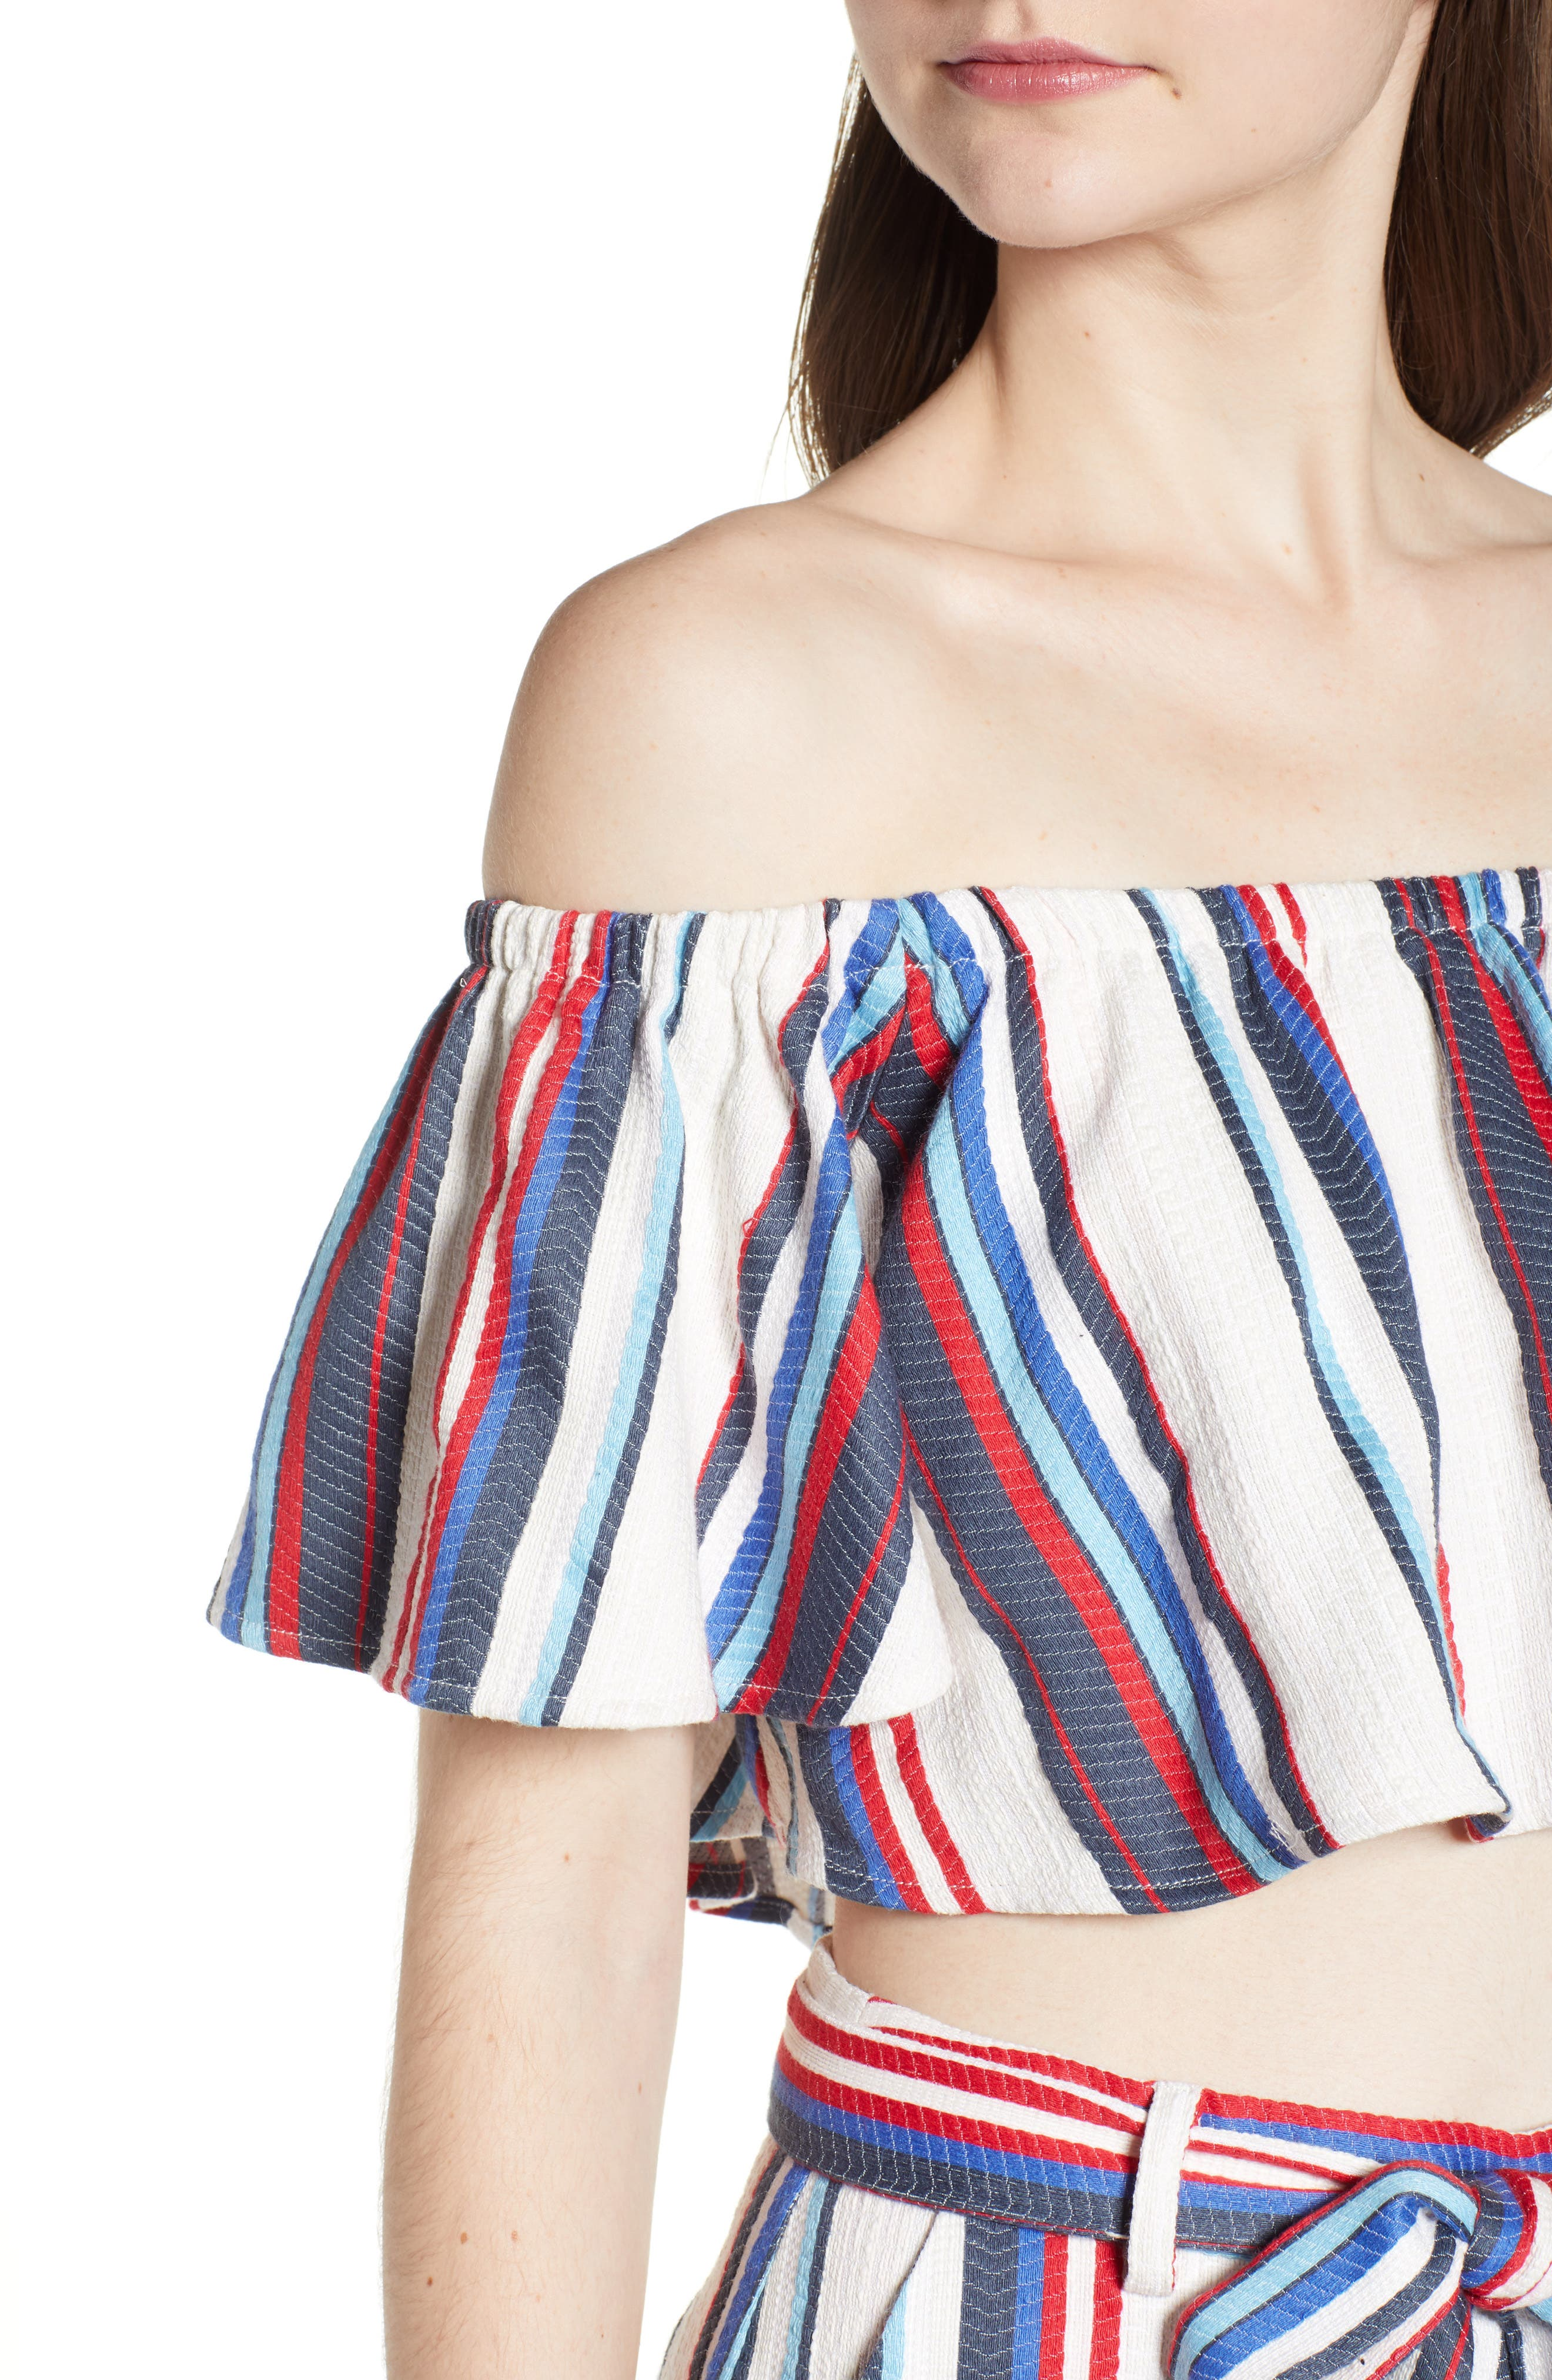 Azul Stripe Off the Shoulder Crop Top,                             Alternate thumbnail 6, color,                             Blue/ Red Stripe